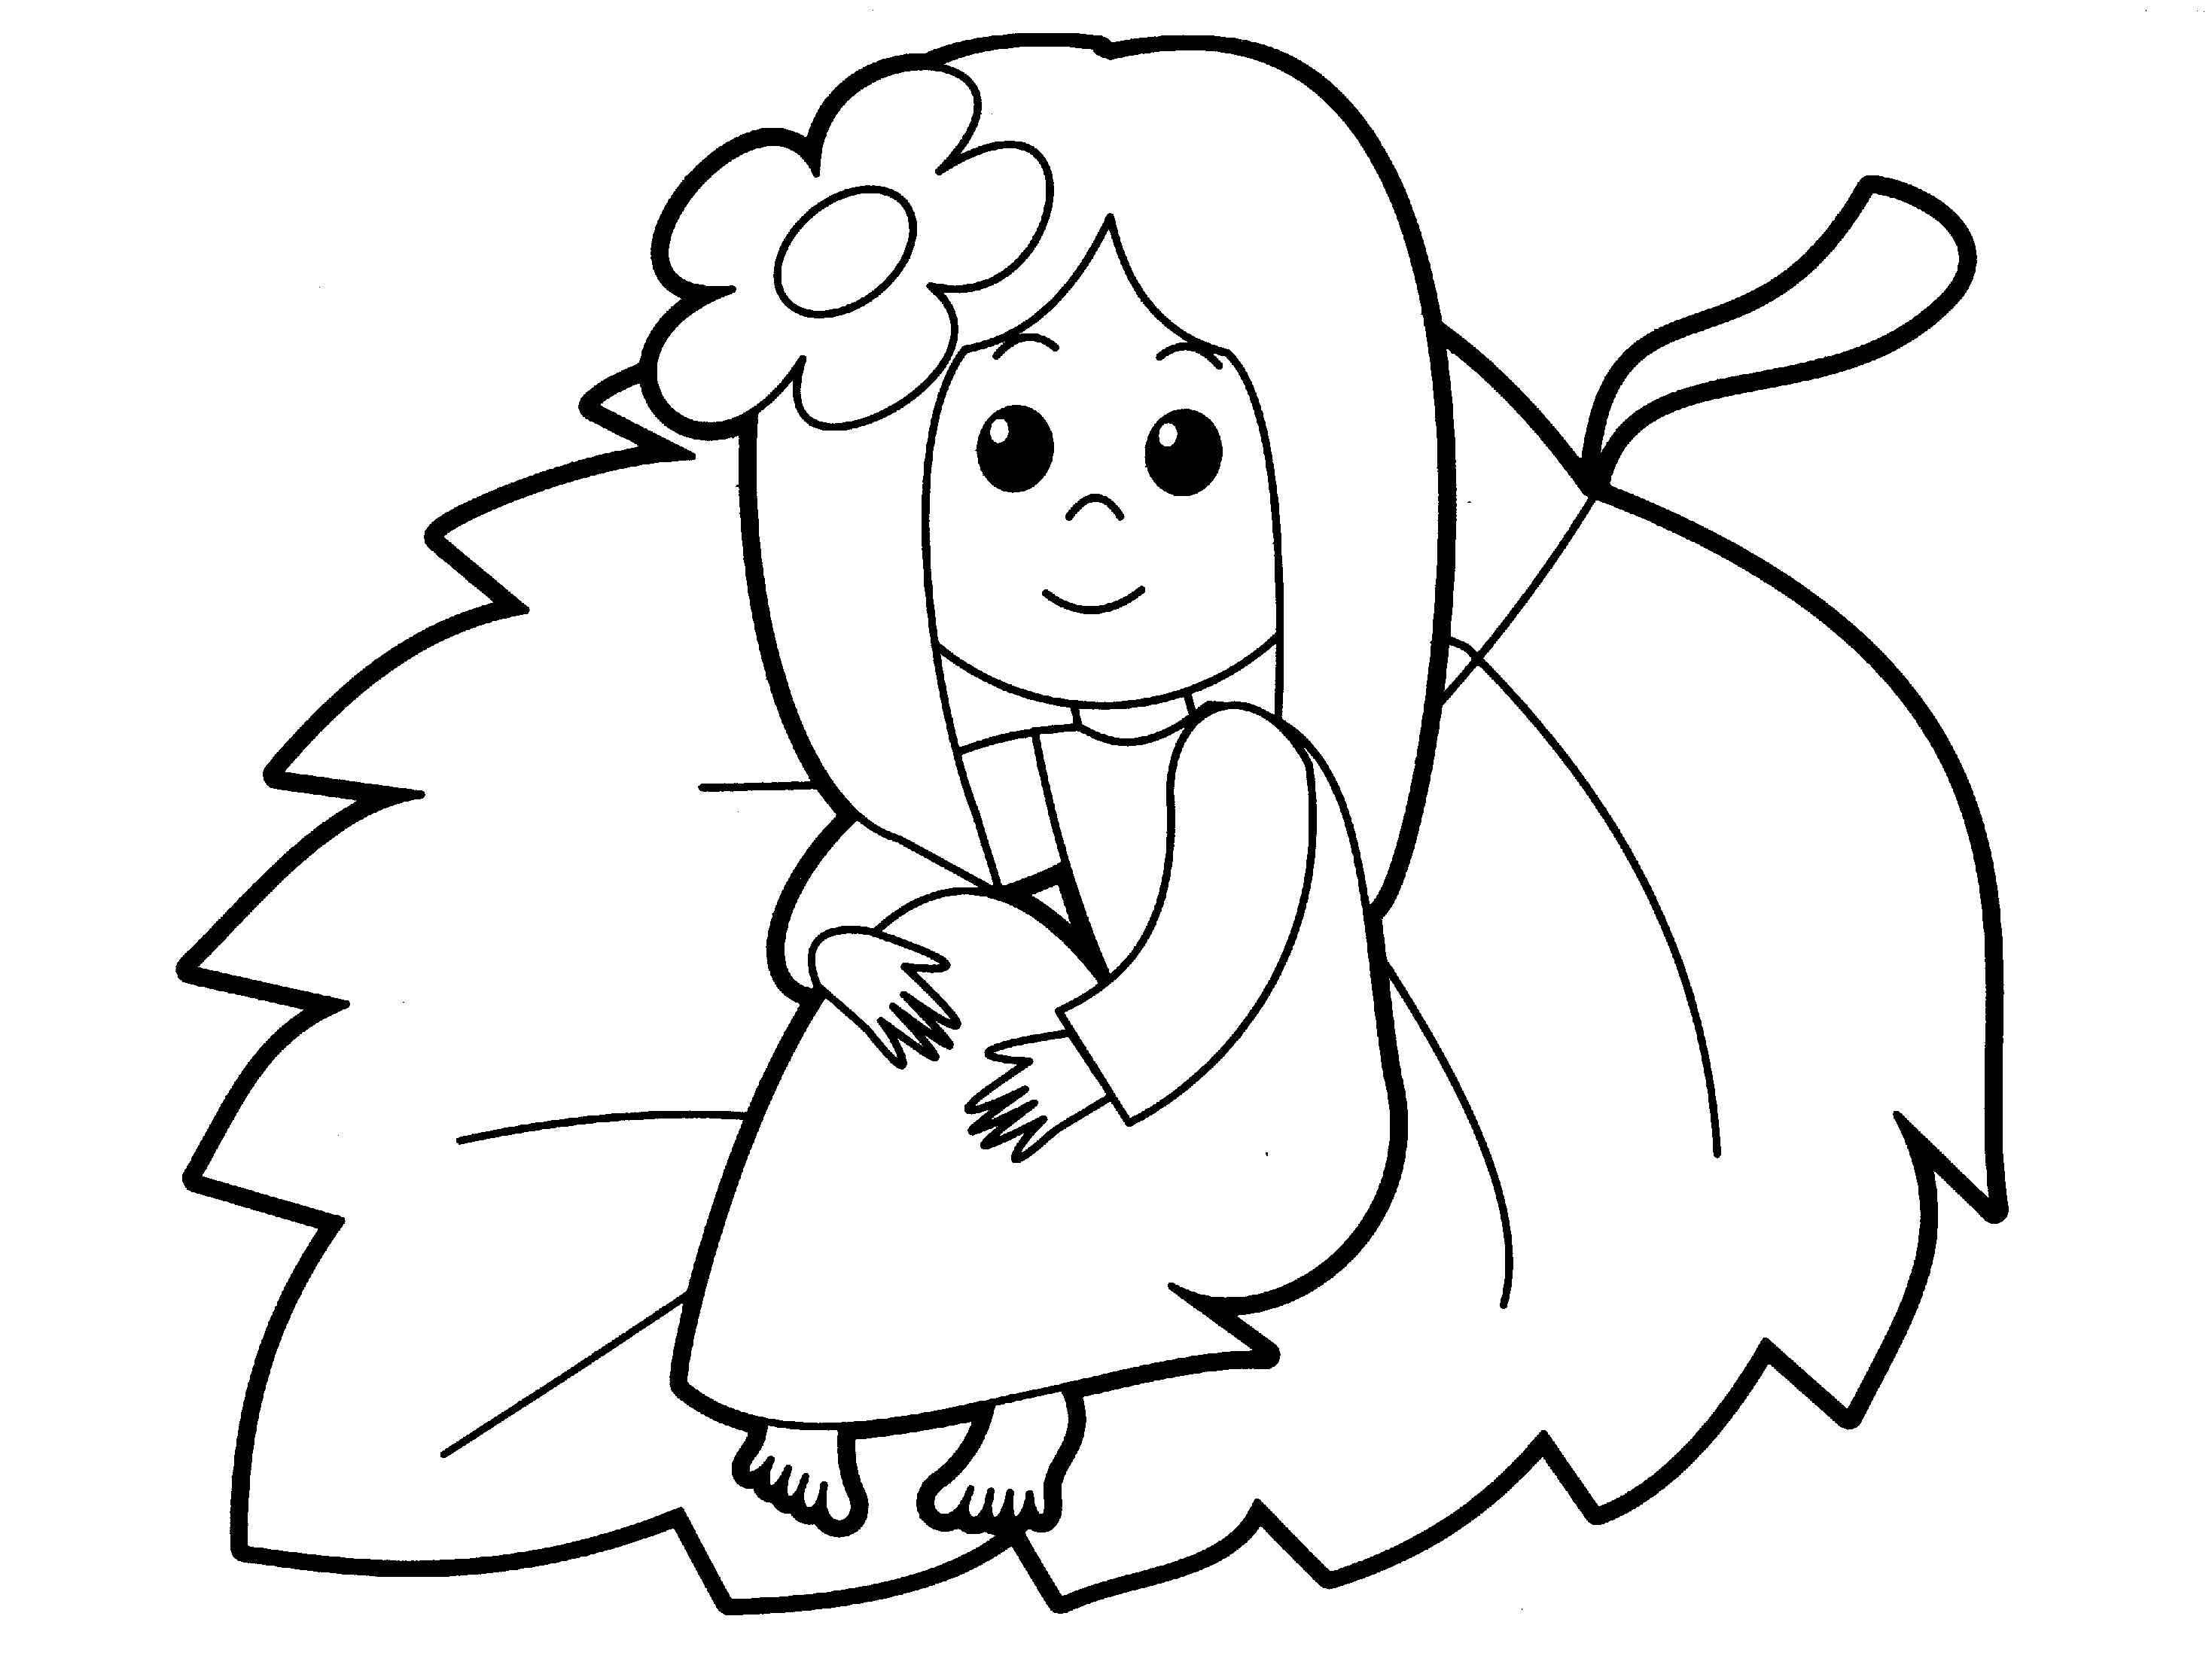 cloudbabies coloring pages for kids - photo#25